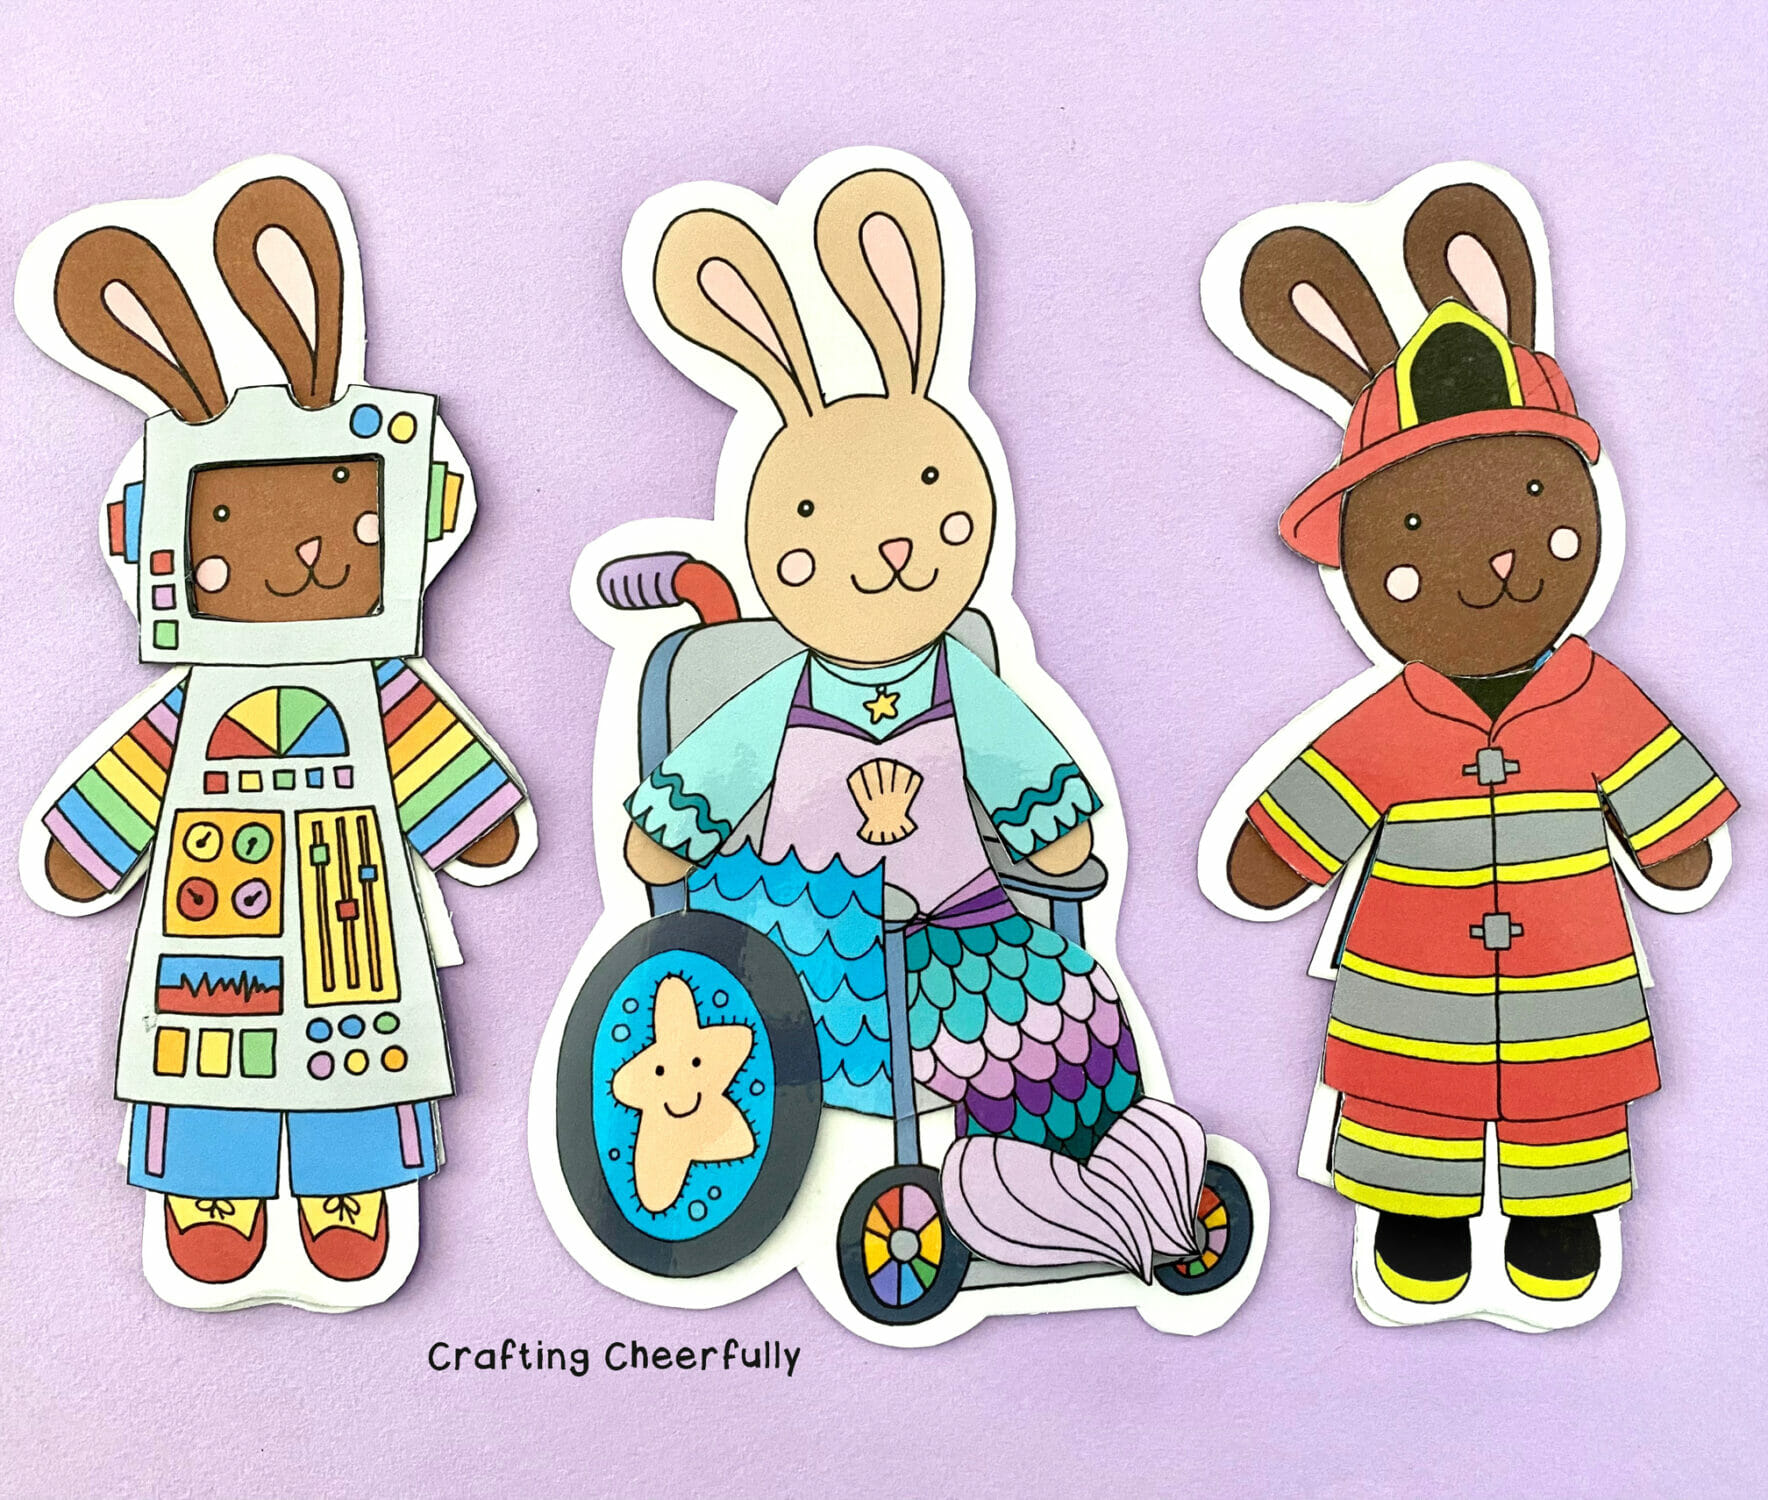 Bunny paper dolls dressed in Halloween costumes lay on a purple surface.